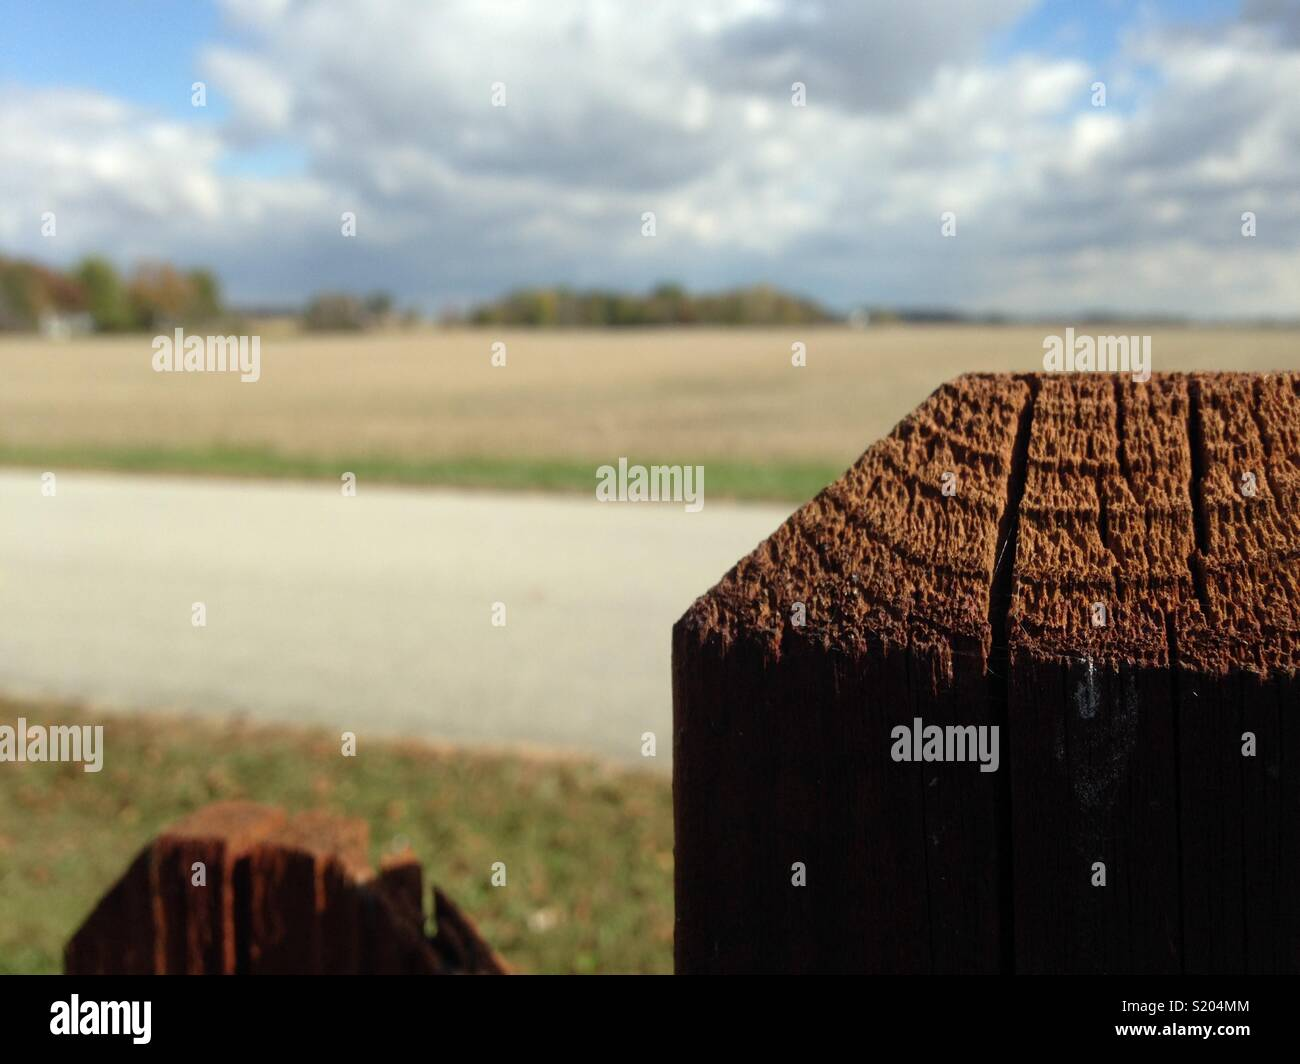 Fence post with field in background. - Stock Image